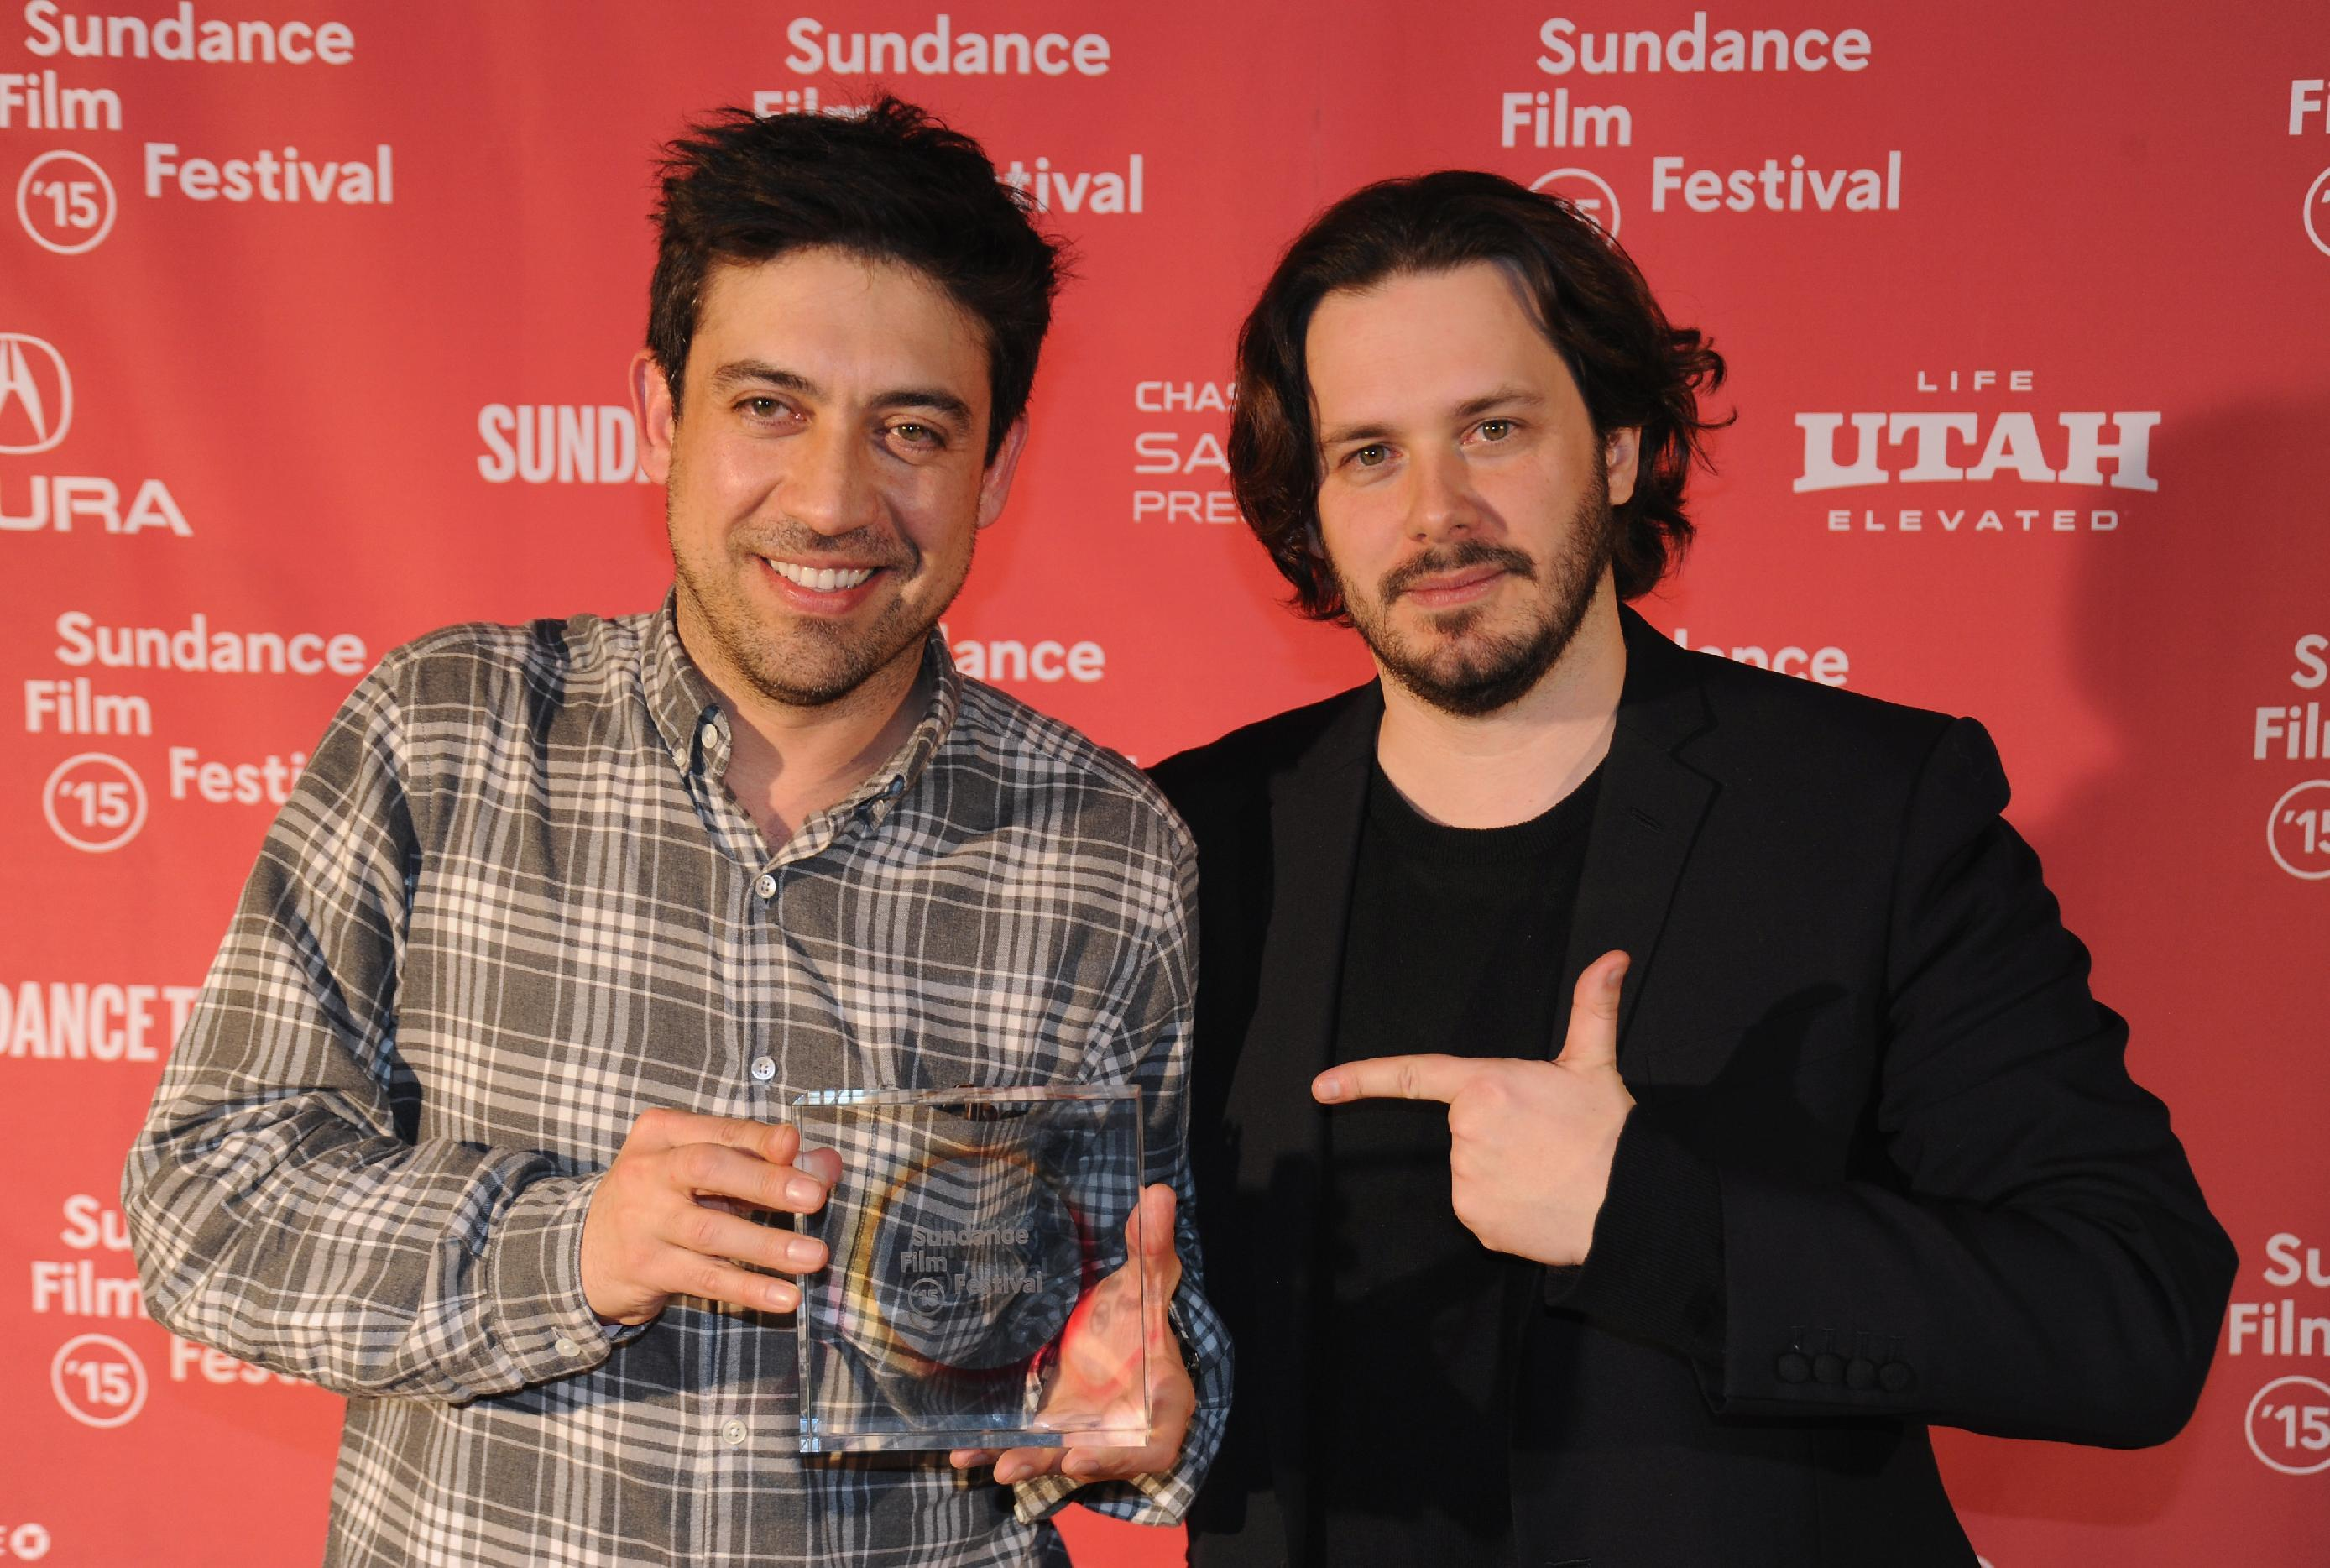 Alfonso Gomez-Rejon, director of 'Me and Earl and the Dying Girl' and juror Edgar Wright attend the Awards Night Ceremony of the 2015 Sundance Film Festival on January 31, 2015 in Park City, Utah (AFP Photo/Clayton Chase)